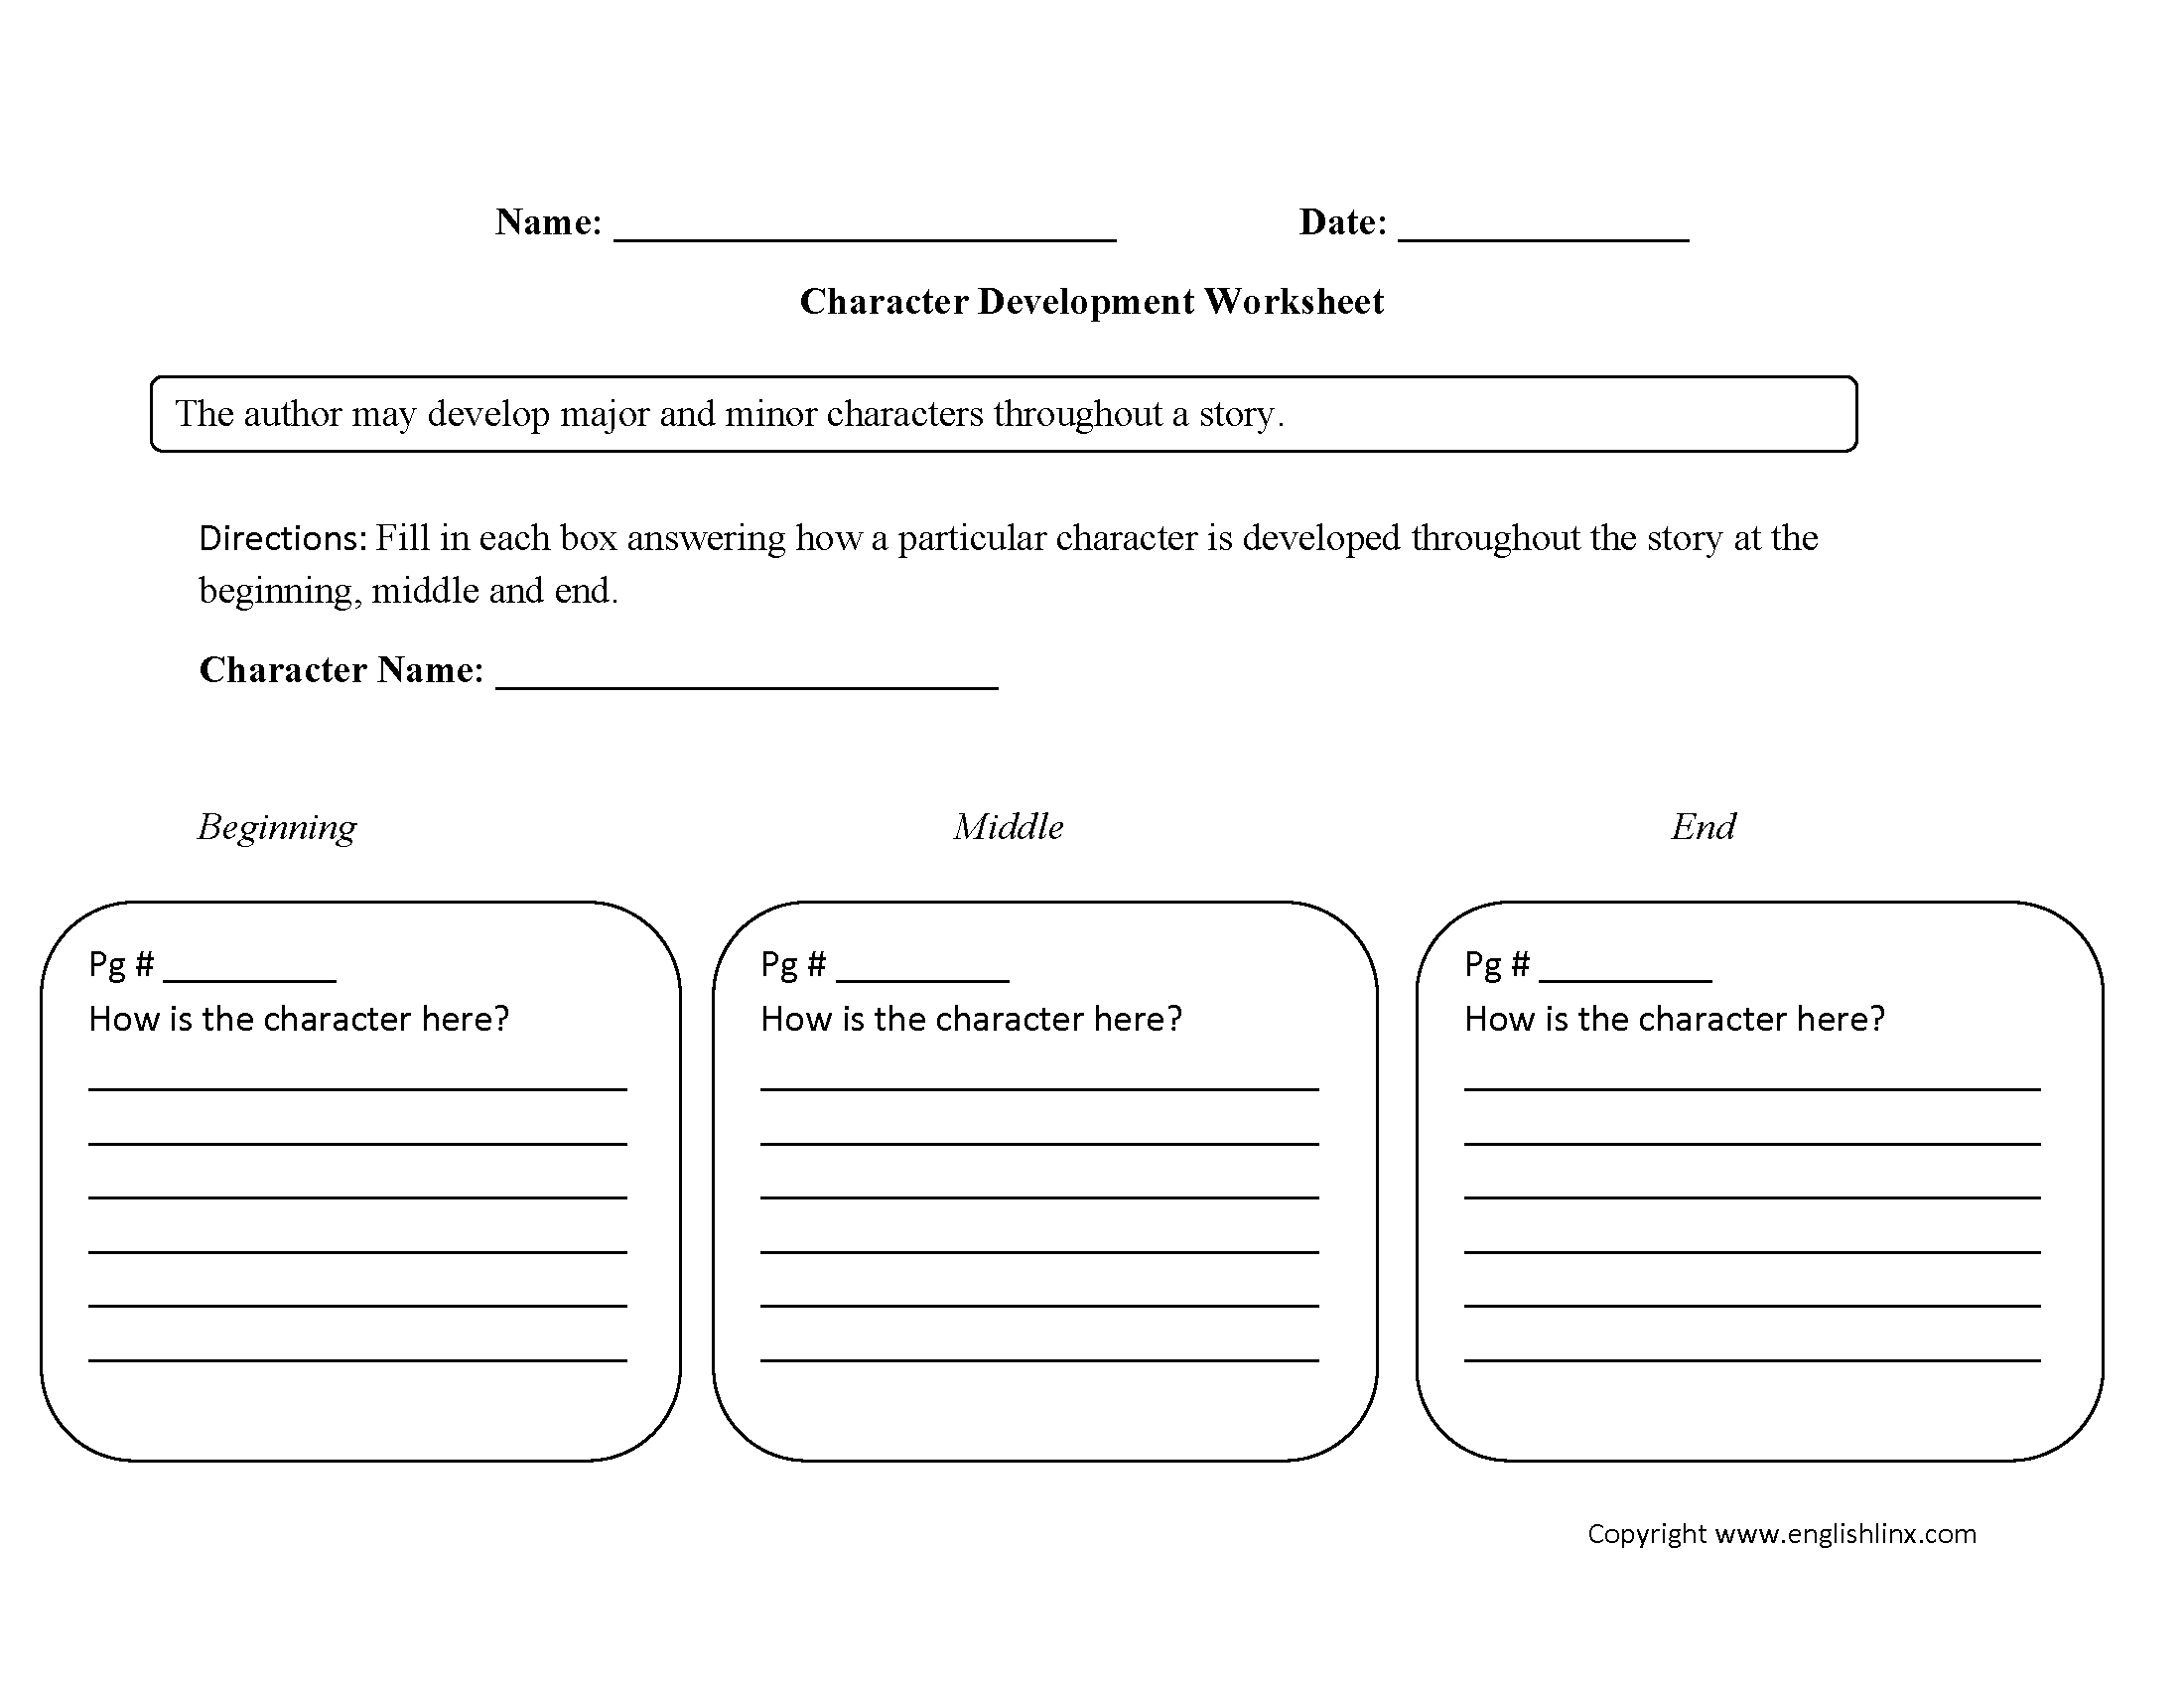 Single Character Development Characterysis Worksheets